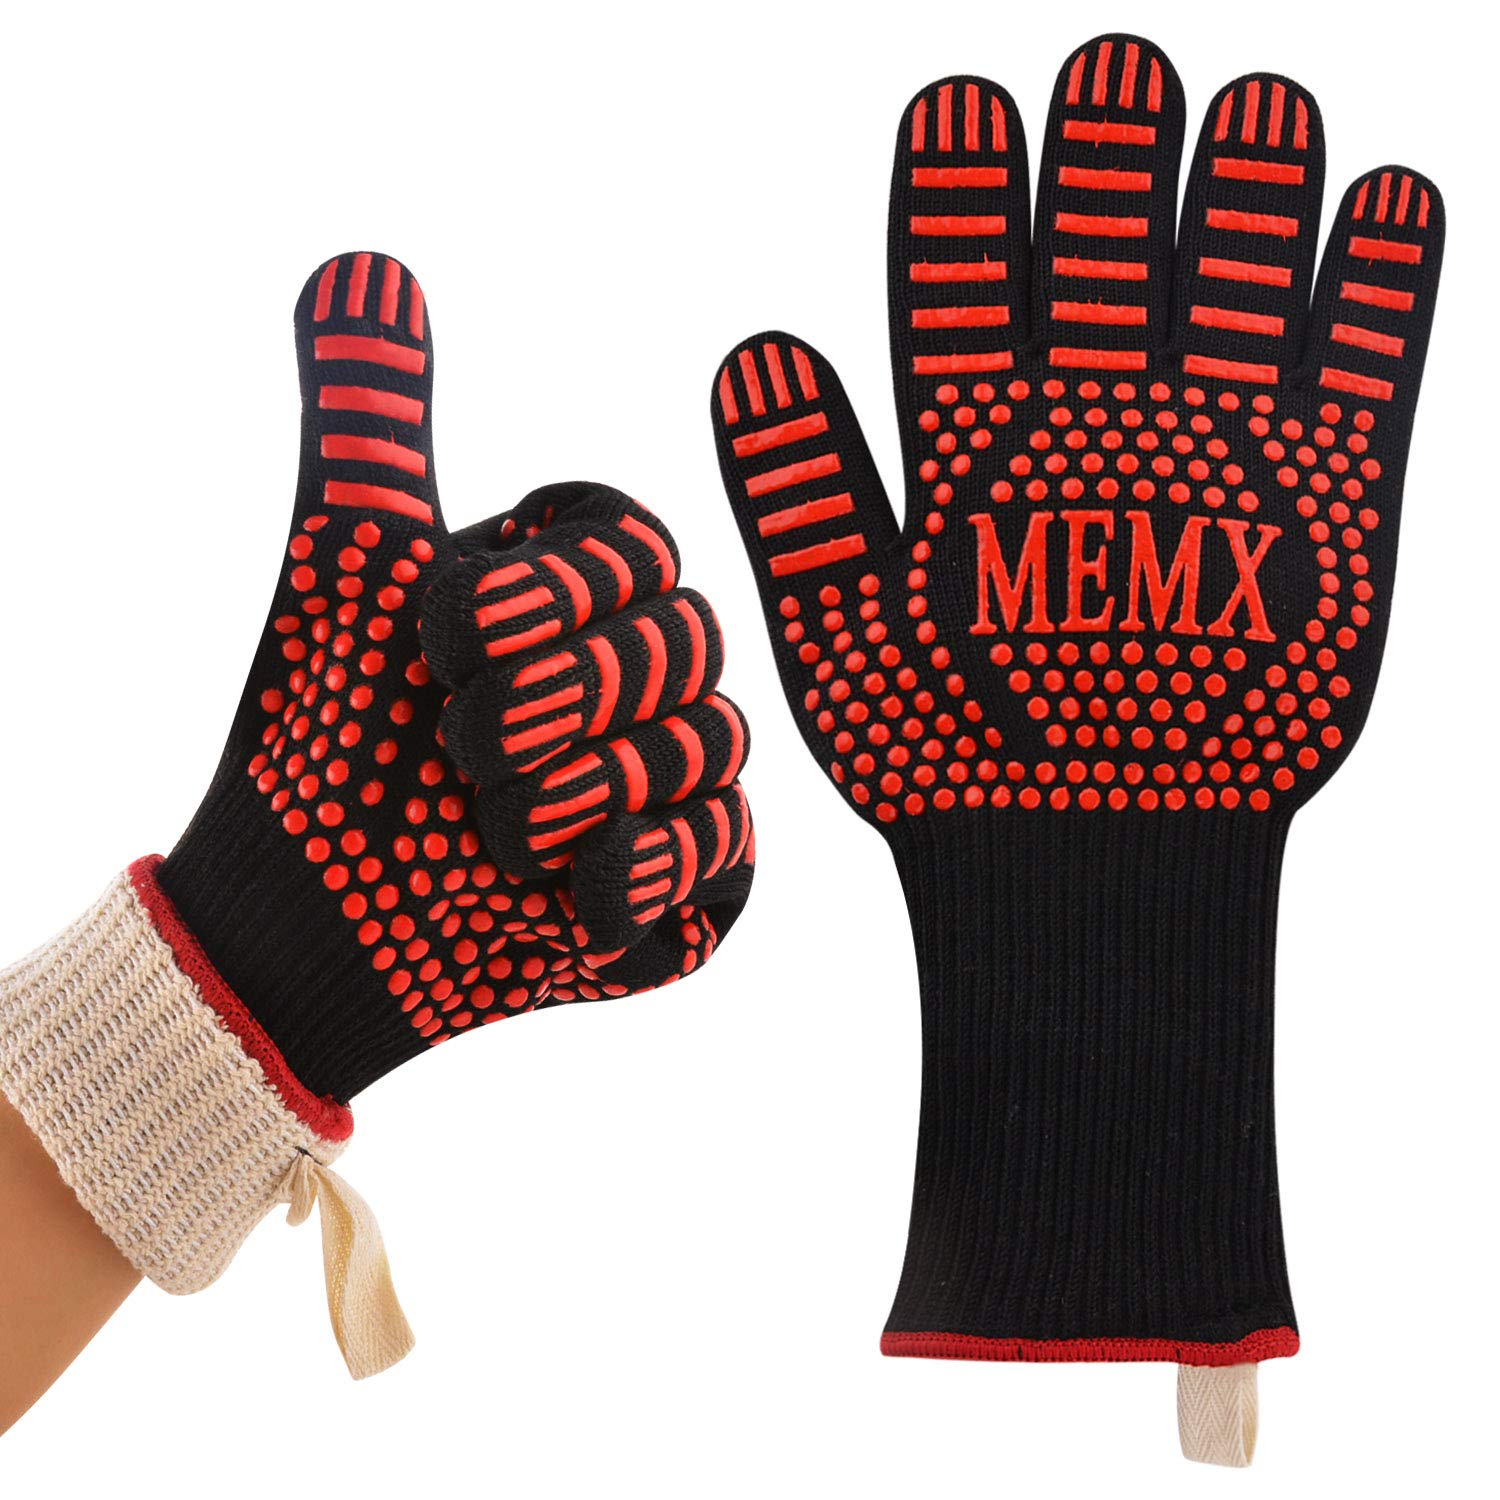 "MEMX Oven Gloves, Barbecue Gloves 1472°F Heat Resistant Grill Gloves, Extreme Kitchen Cooking Oven Mitts, Finger Flexibility 13"" Extra Large Long Cuff EN407 Certified Gloves Aramid & Silicone Non-Slip"